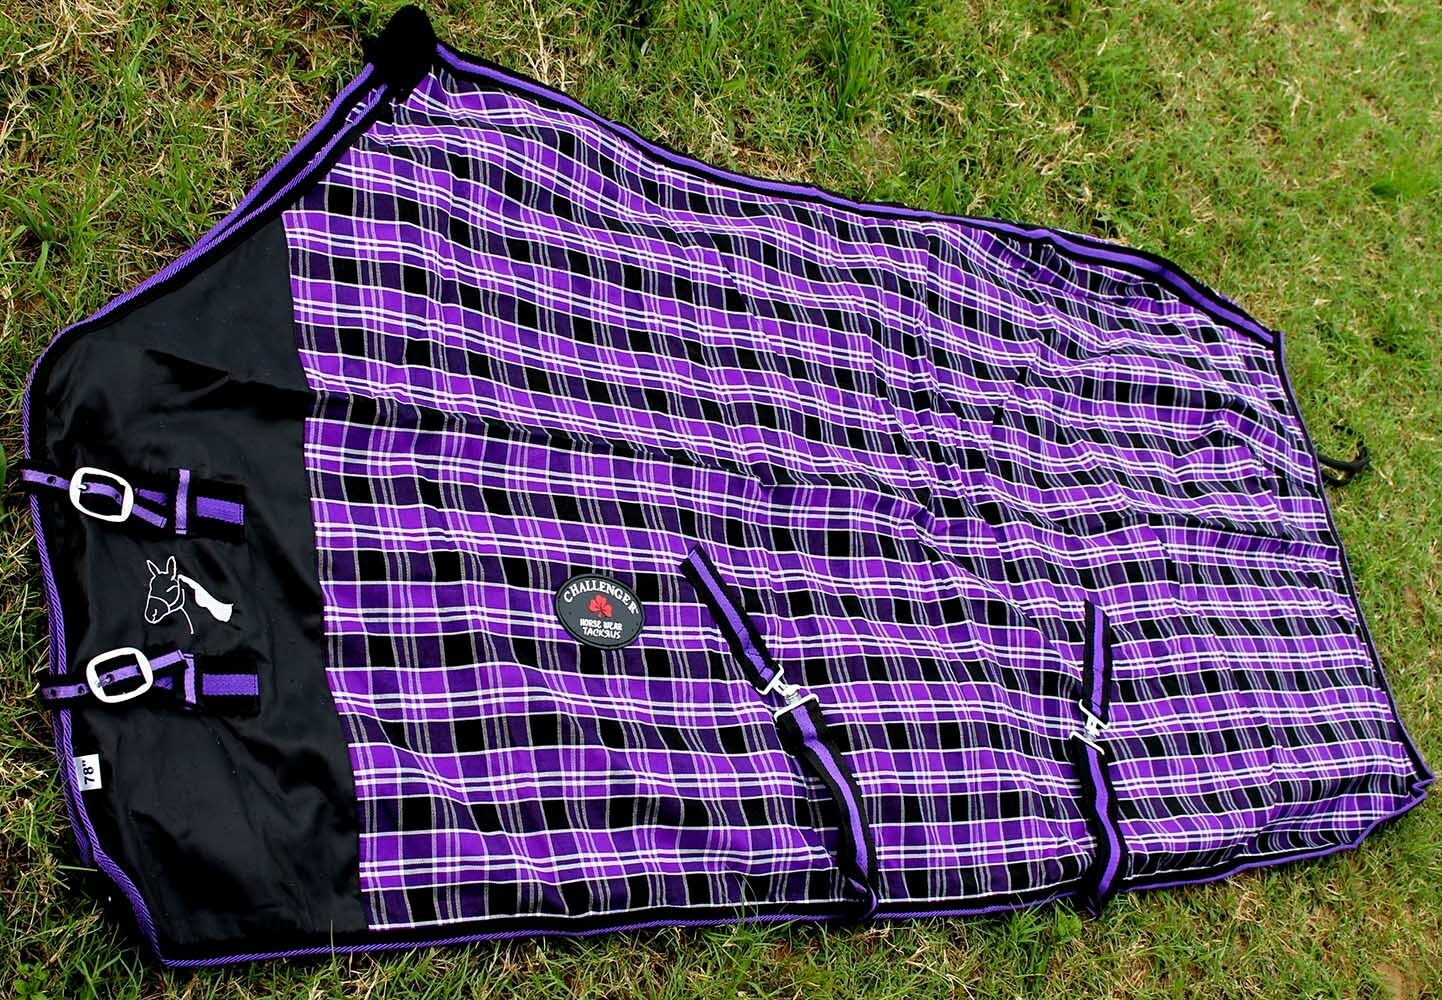 Horse Cotton Sheet Blanket Rug Summer Spring Purple 5330   for your style of play at the cheapest prices